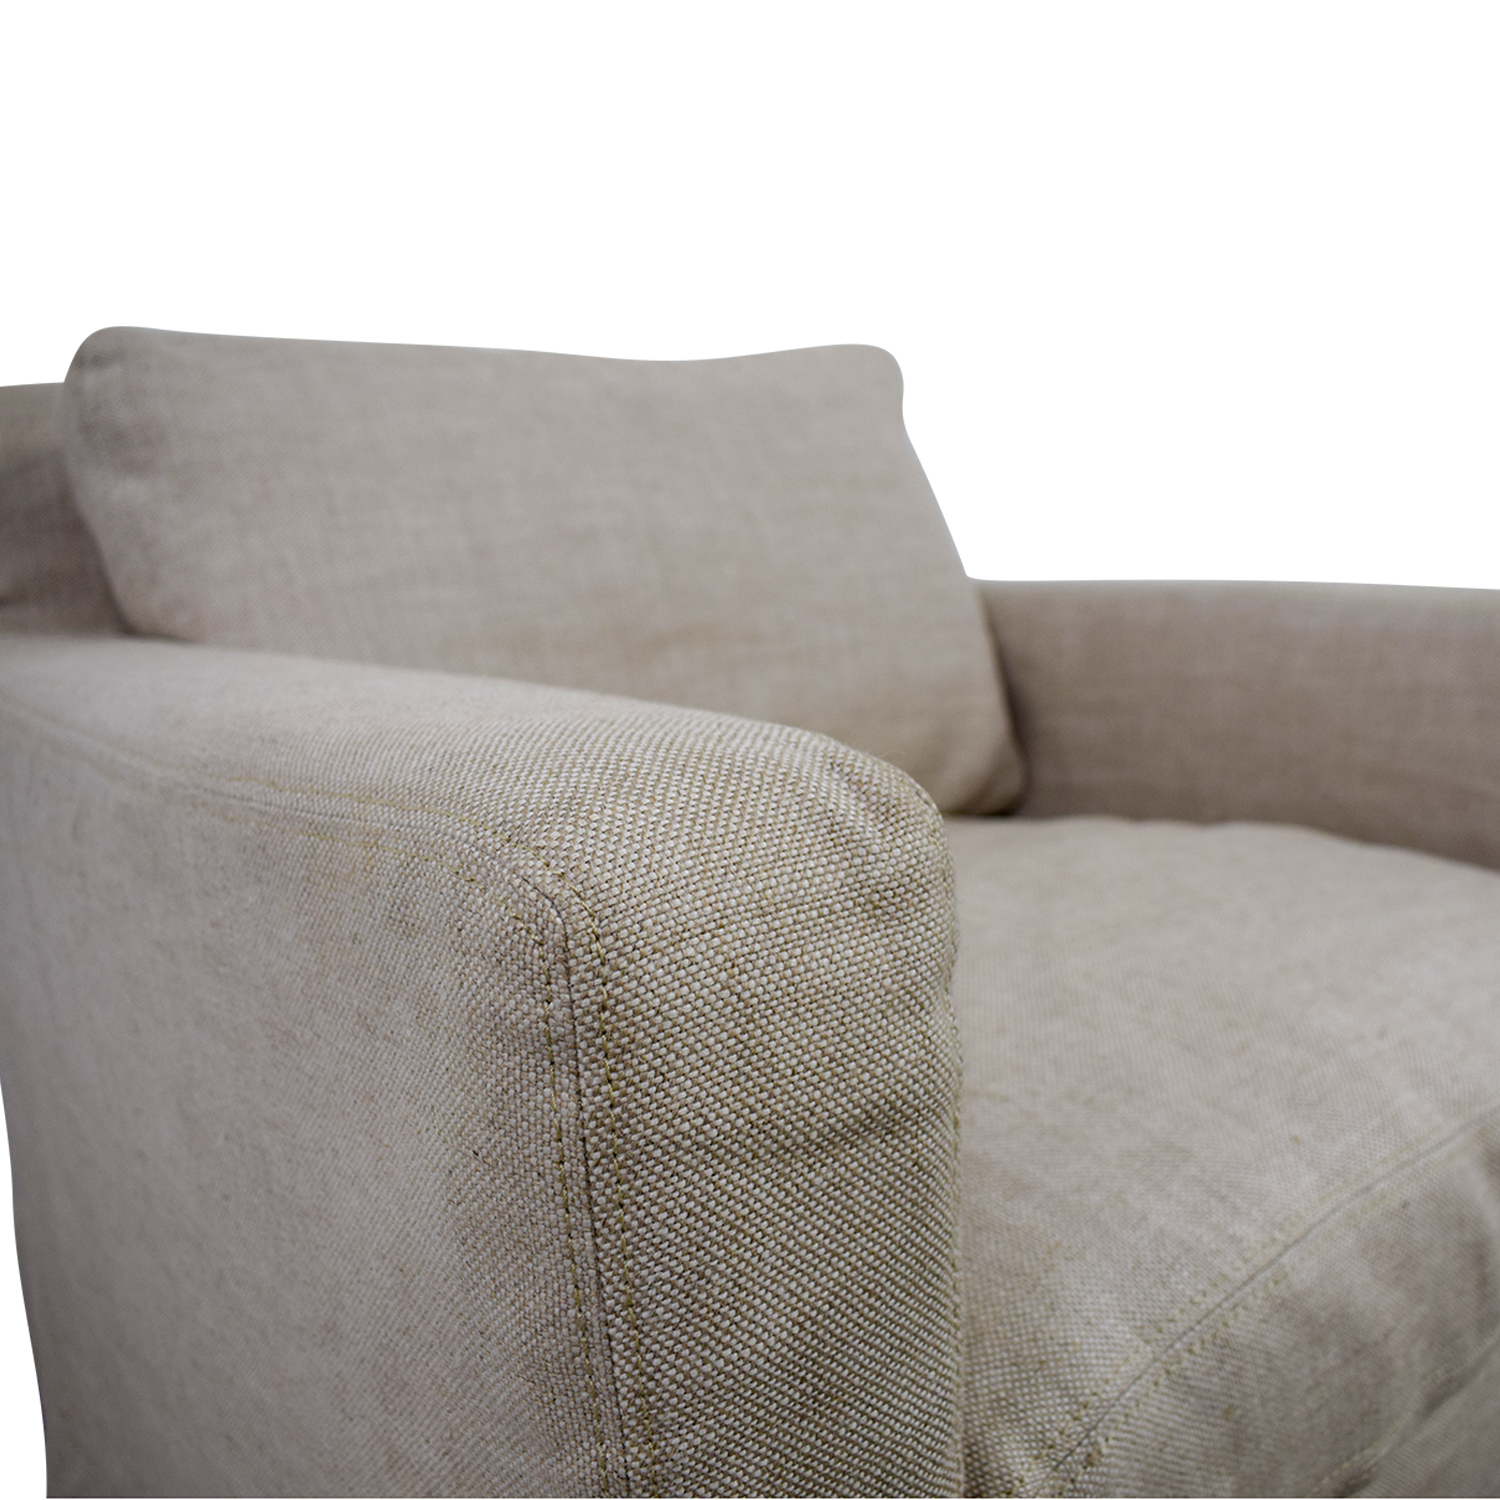 Restoration Hardware Restoration Hardware Beige Slipcovered Belgian Track Arm Chair and Ottoman second hand